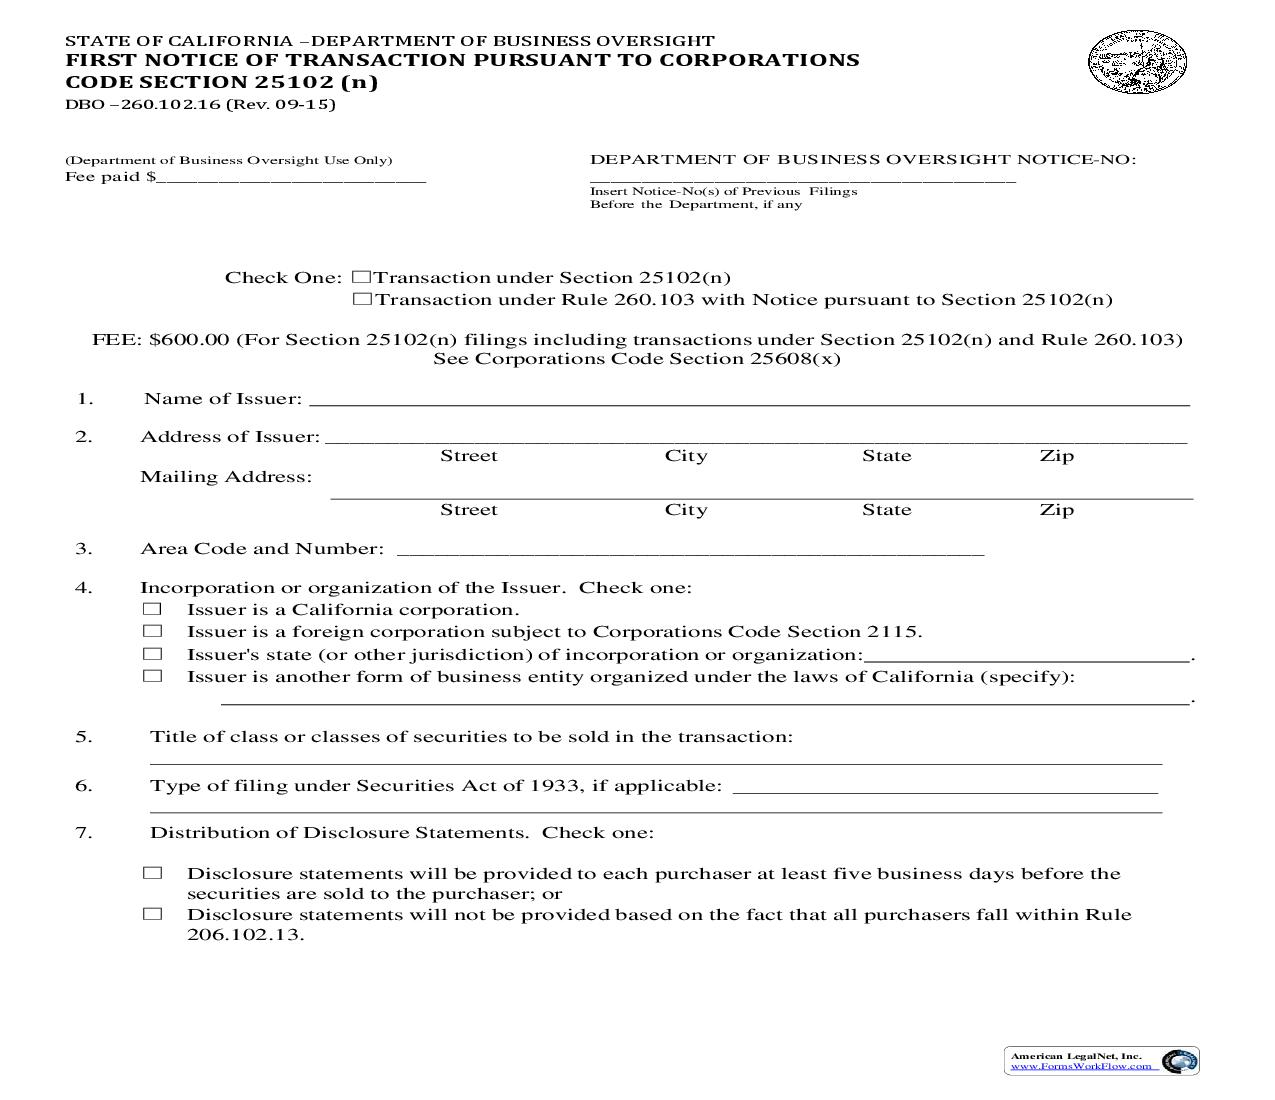 First Notice Of Transaction Pursuant To Corporations Code Section 25102(n) {DBO–260.102.16} | Pdf Fpdf Doc Docx | California